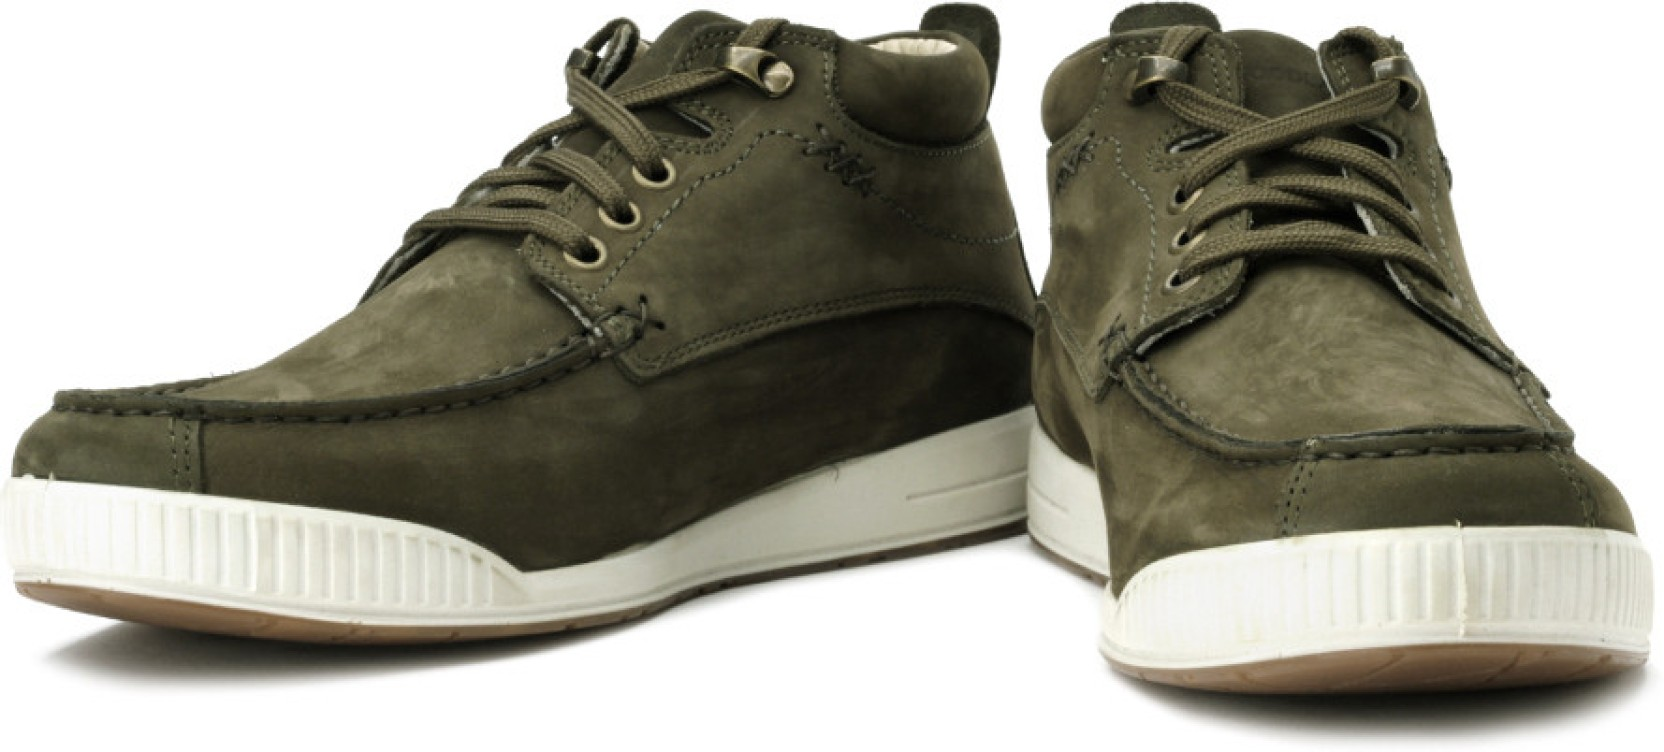 Woodland Boots - Buy Olive Green Color Woodland Boots ...